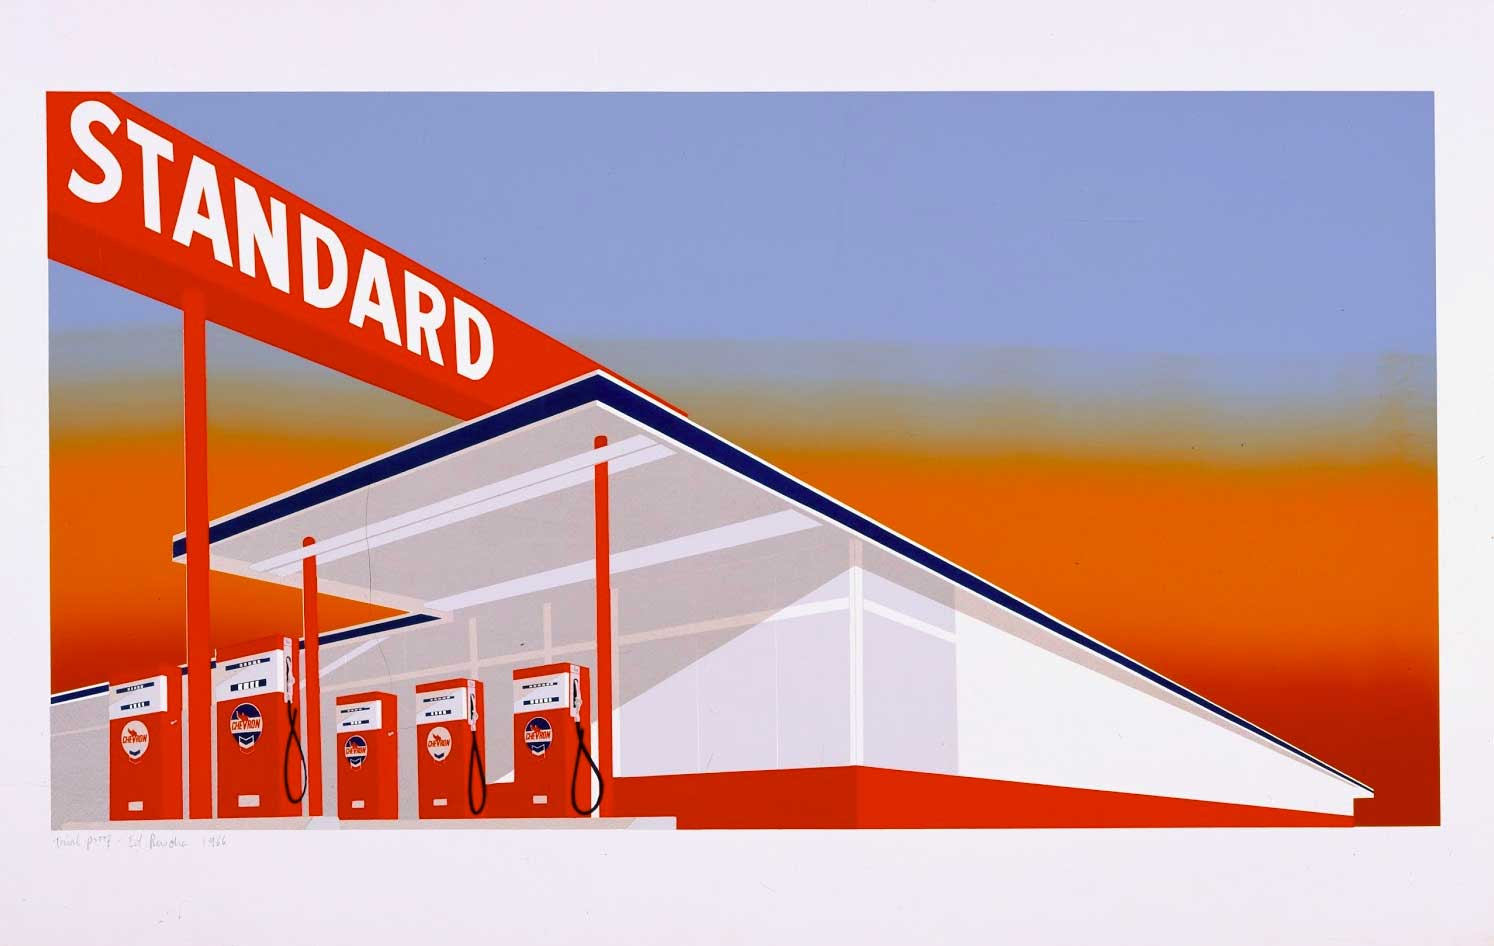 Ed Ruscha, Standard Station, 1966, Color screen print. Published by Audrey Sabol, Villanova, PA, Fine Arts Museums of San Francisco. © Ed Ruscha